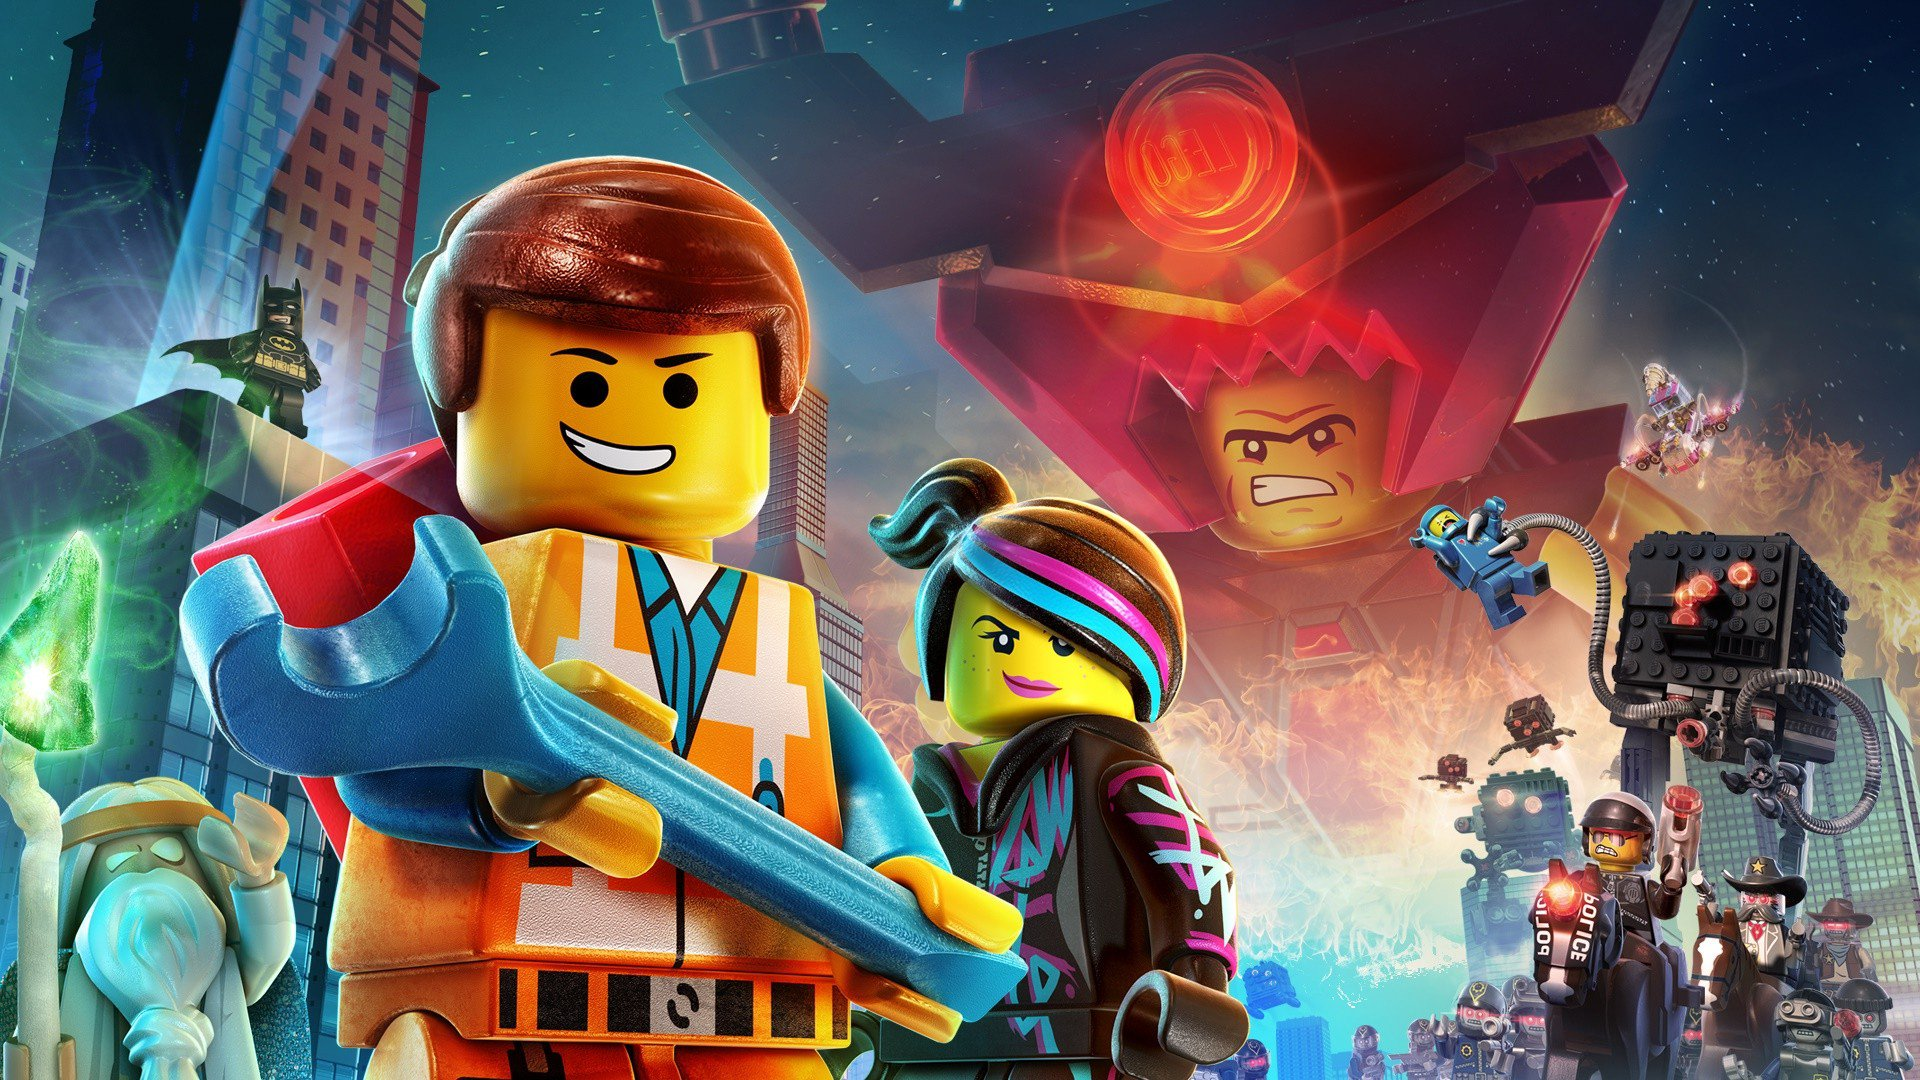 lego movie city background - photo #6